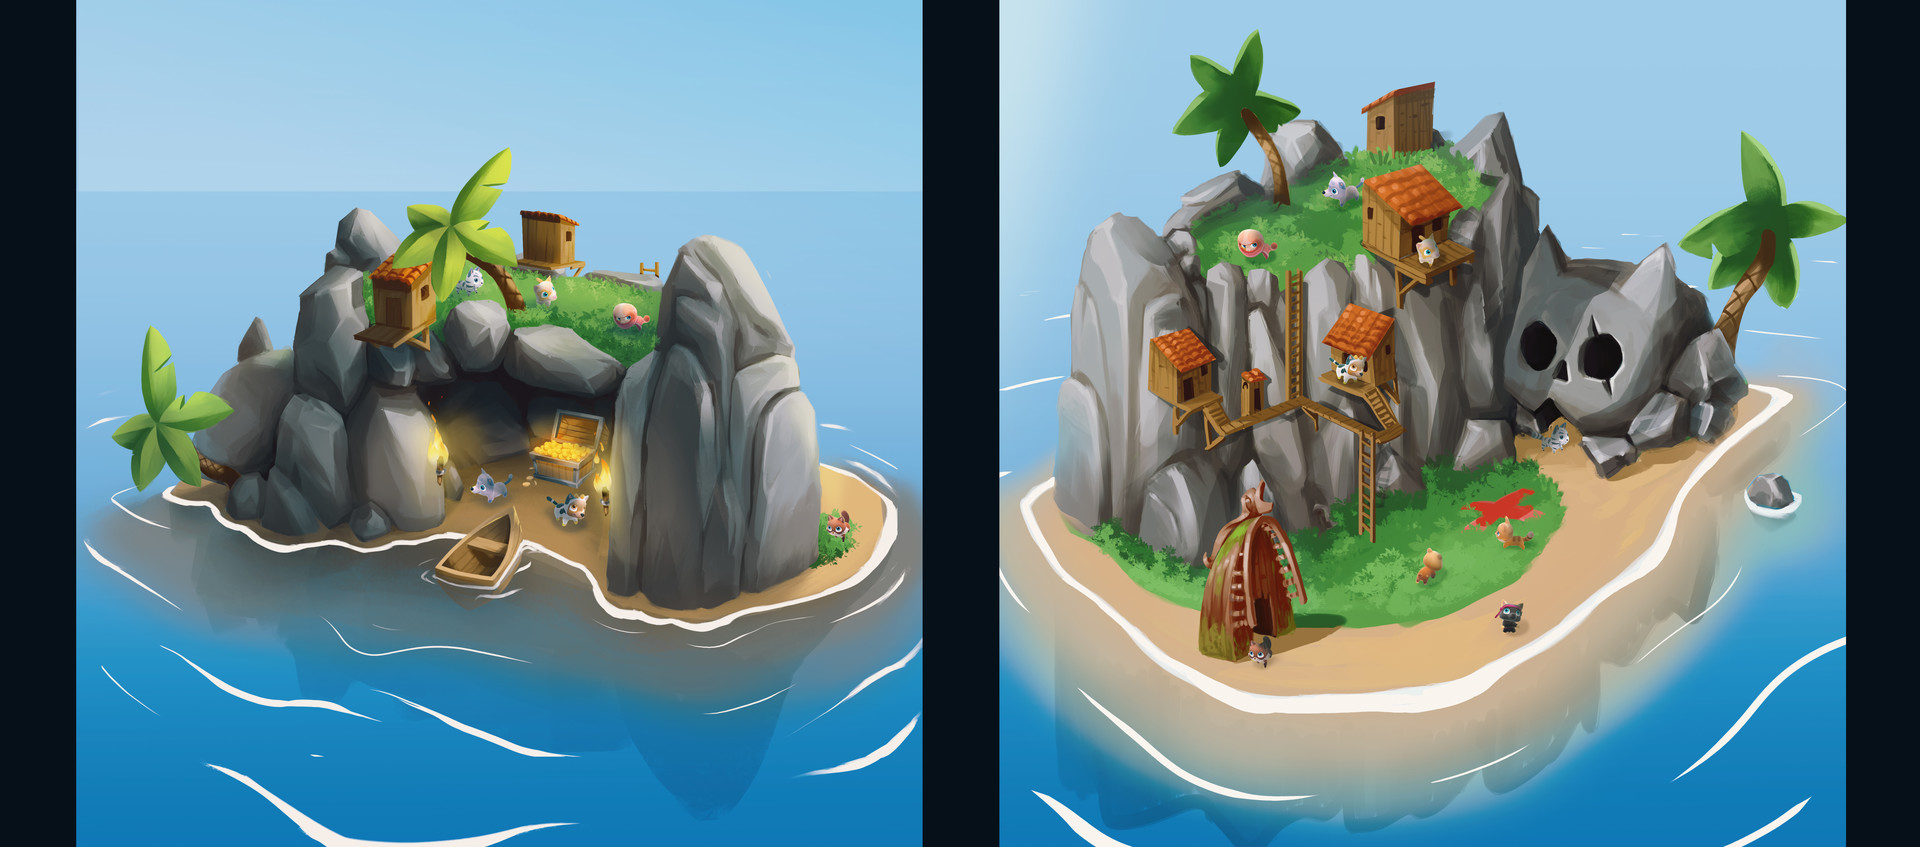 Jean philippe hugonnet concept island pirate3